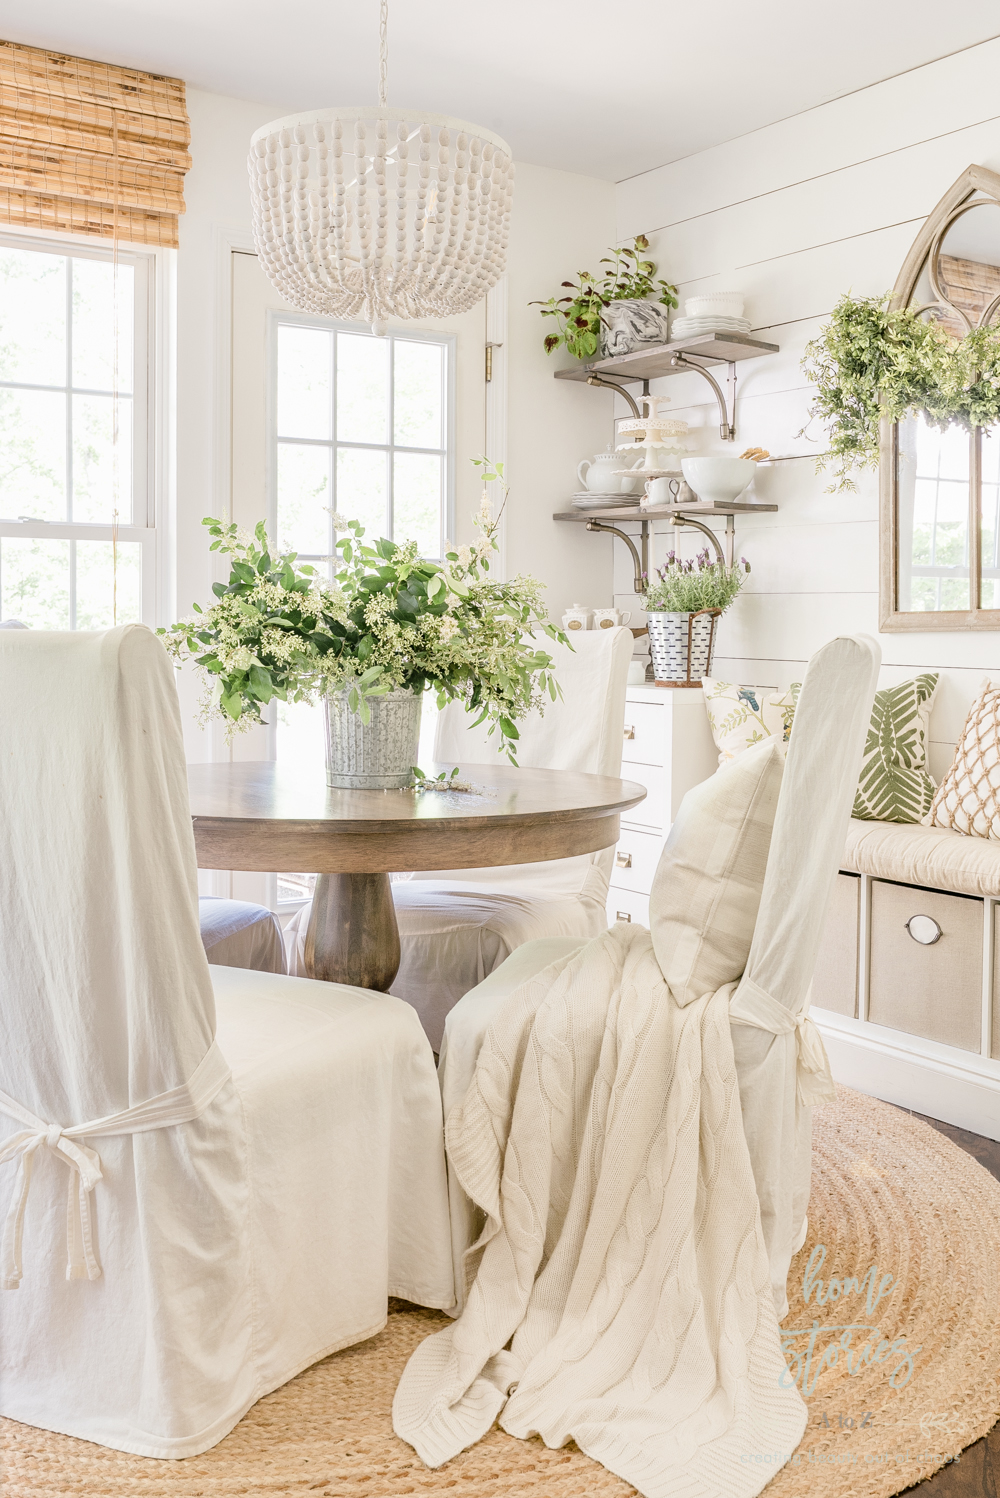 Spring Decor Ideas - Lush Green Breakfast Room by Home Stories A to Z